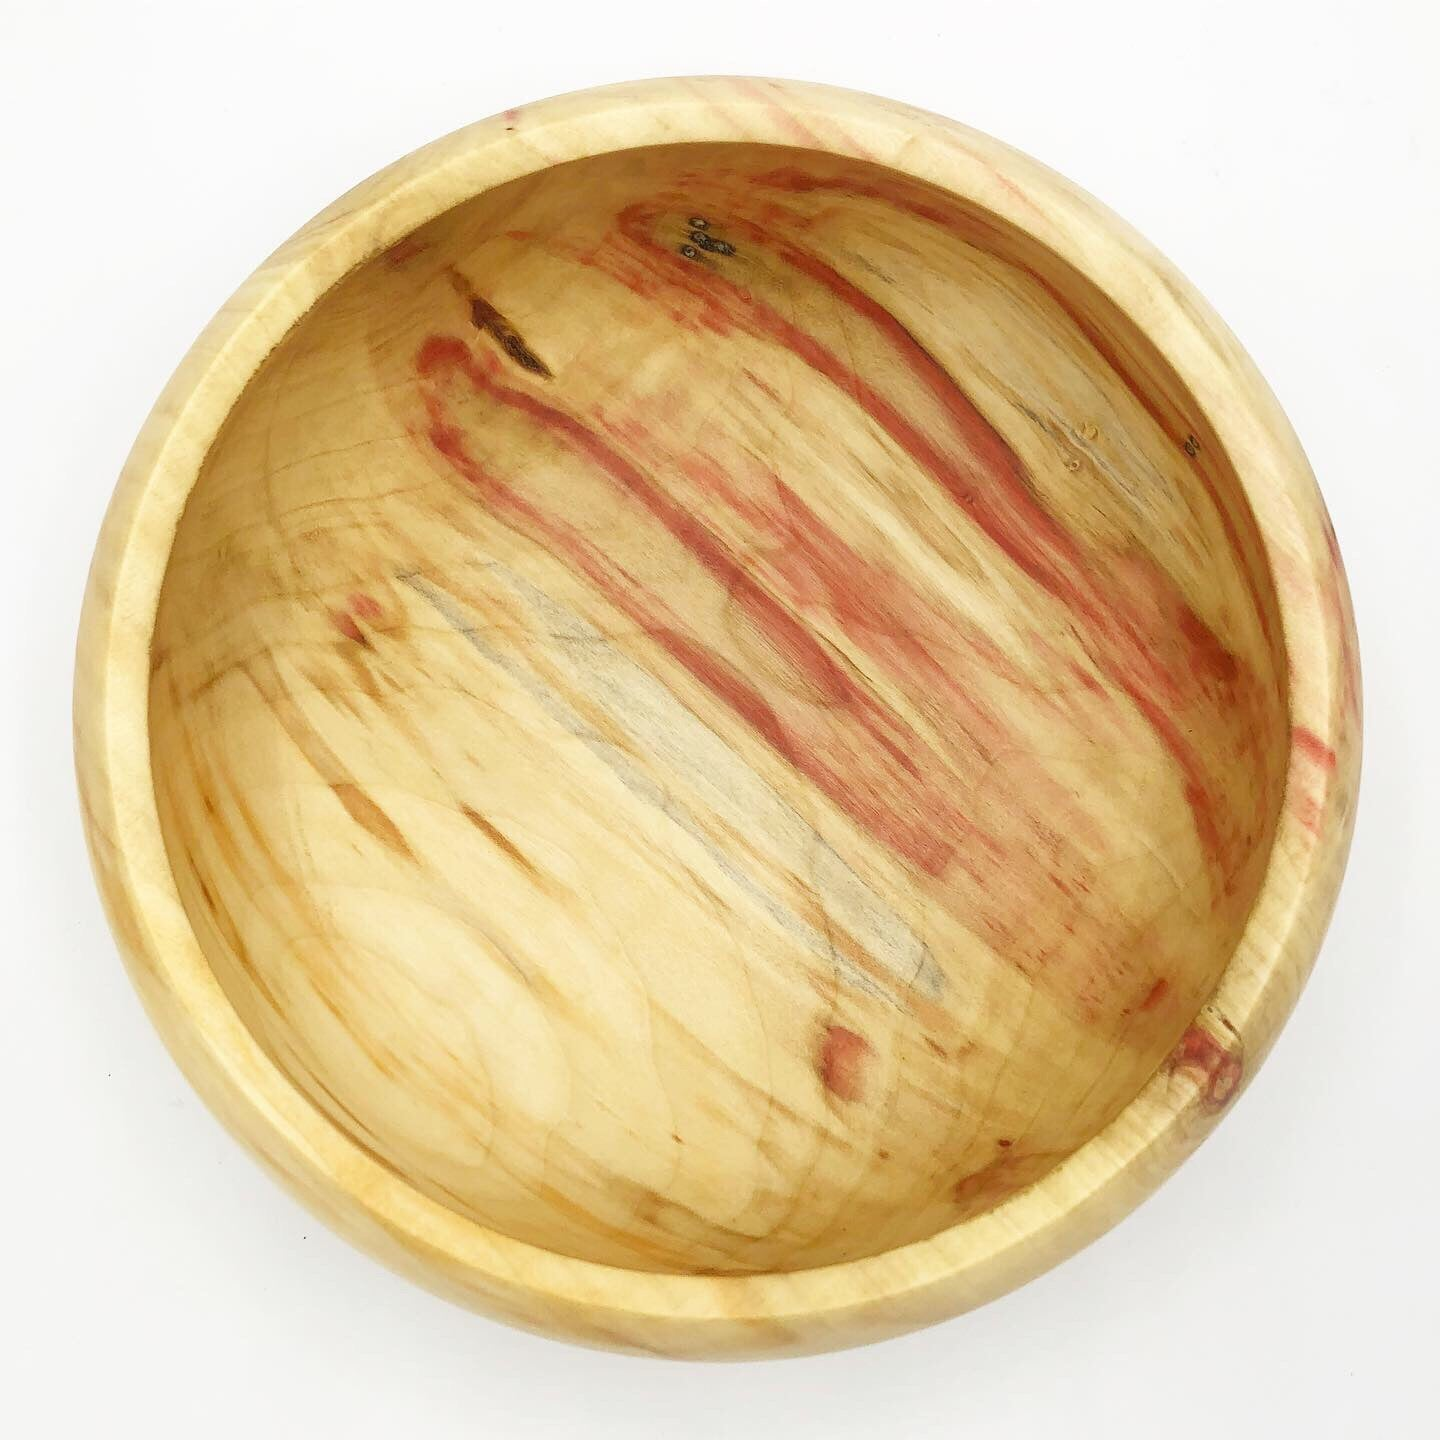 Flaming Box Elder Bowl - No One Alike